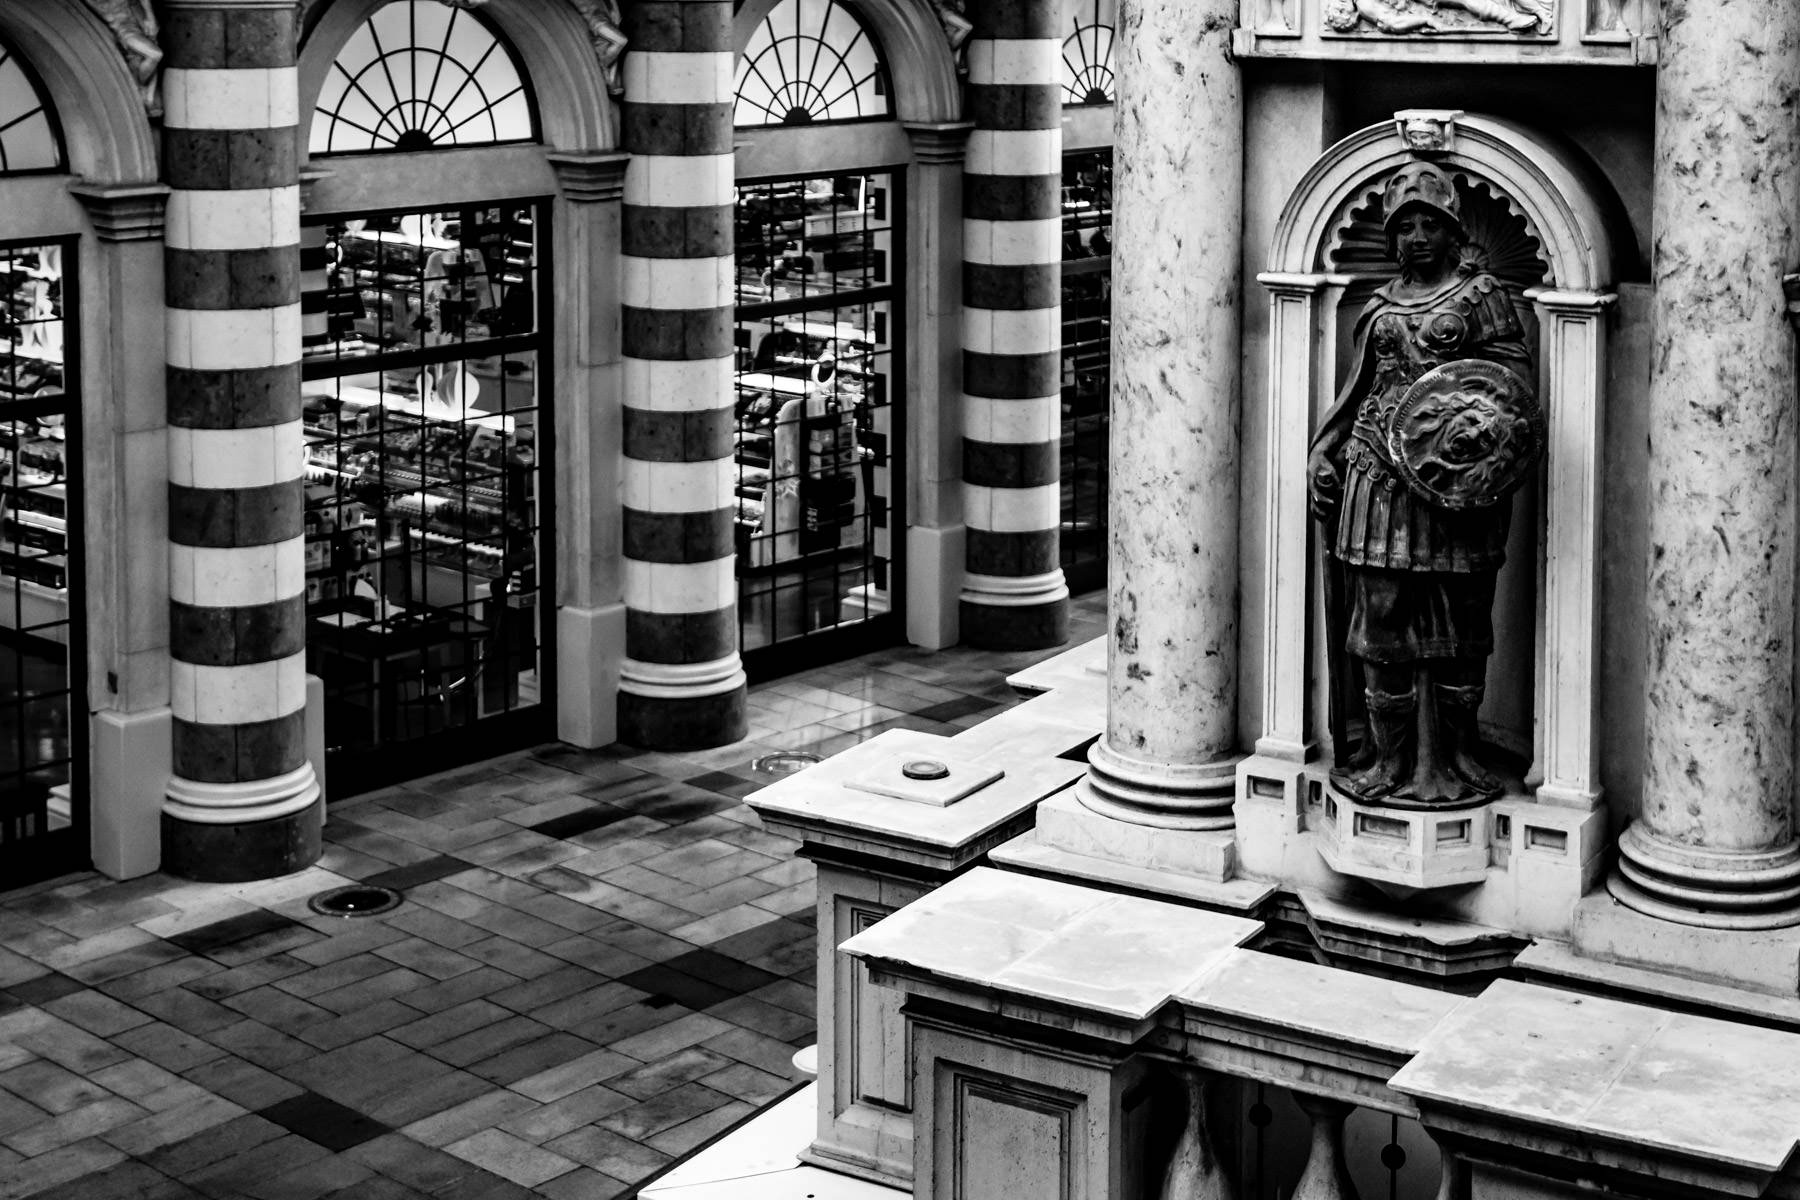 A statue seems to guard over the Sephora shop at The Venetian, Las Vegas.